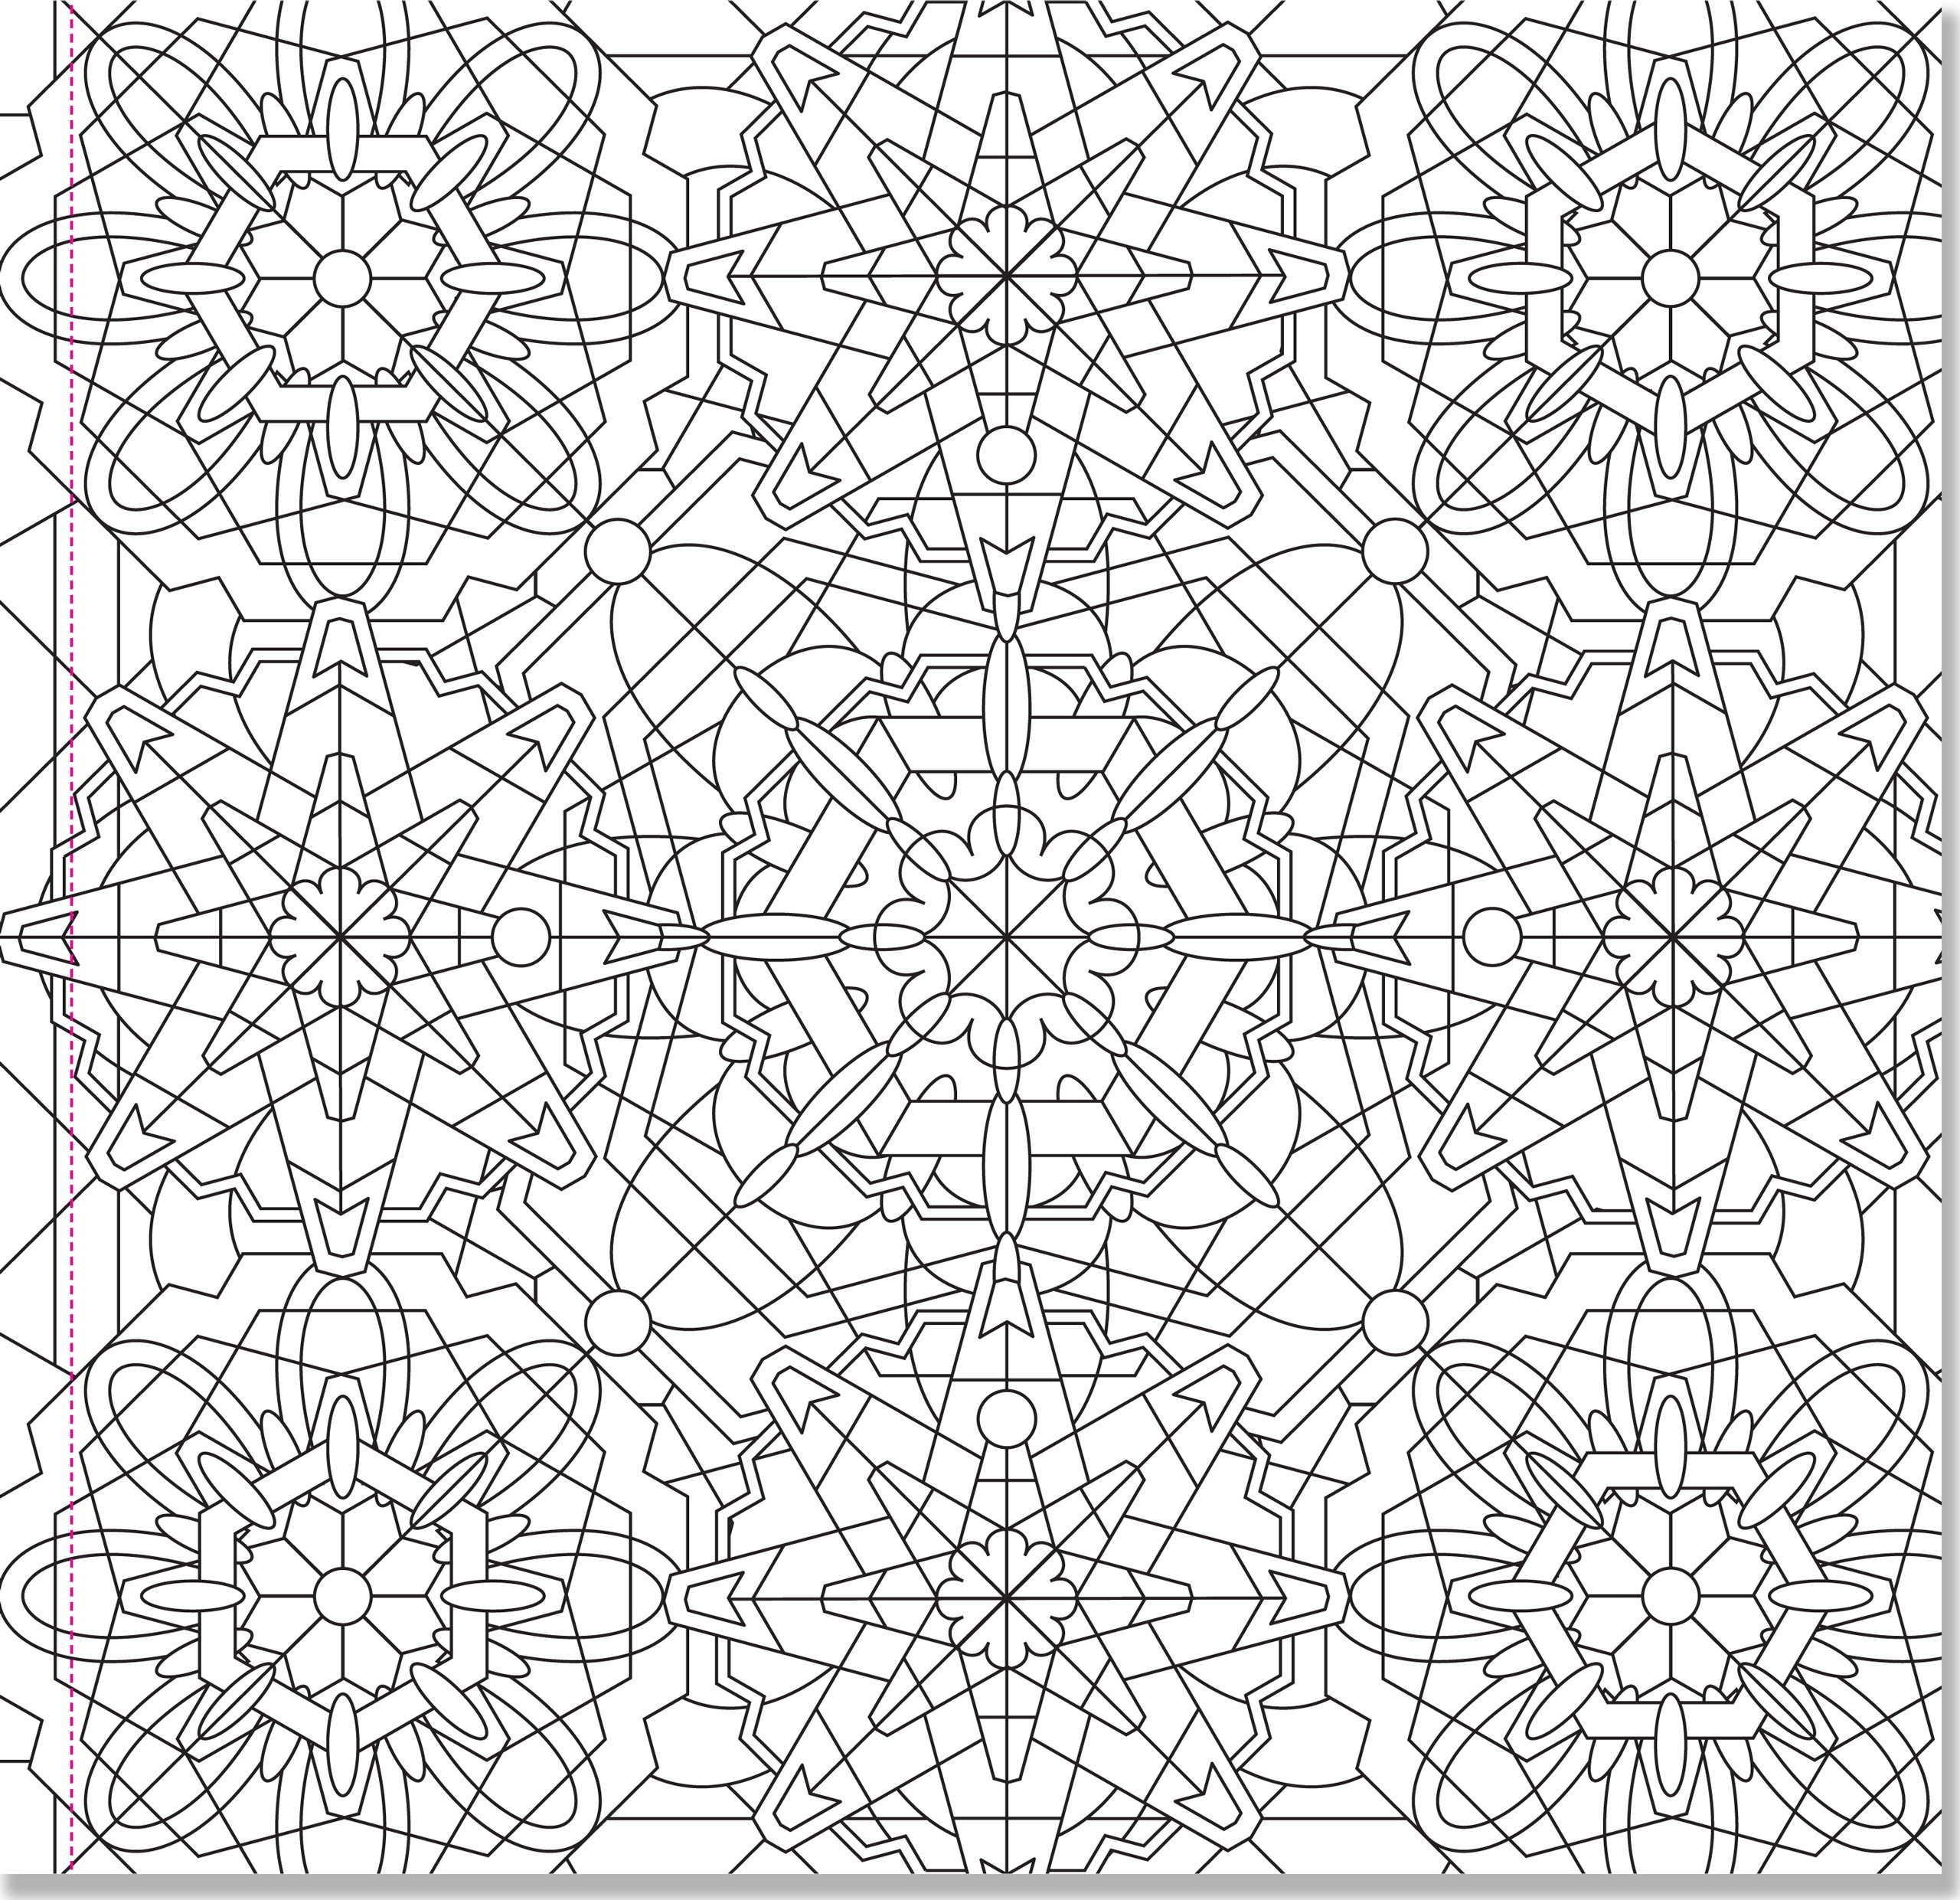 Amazon.com: Kaleidoscope Designs Adult Coloring Book (31 stress ...